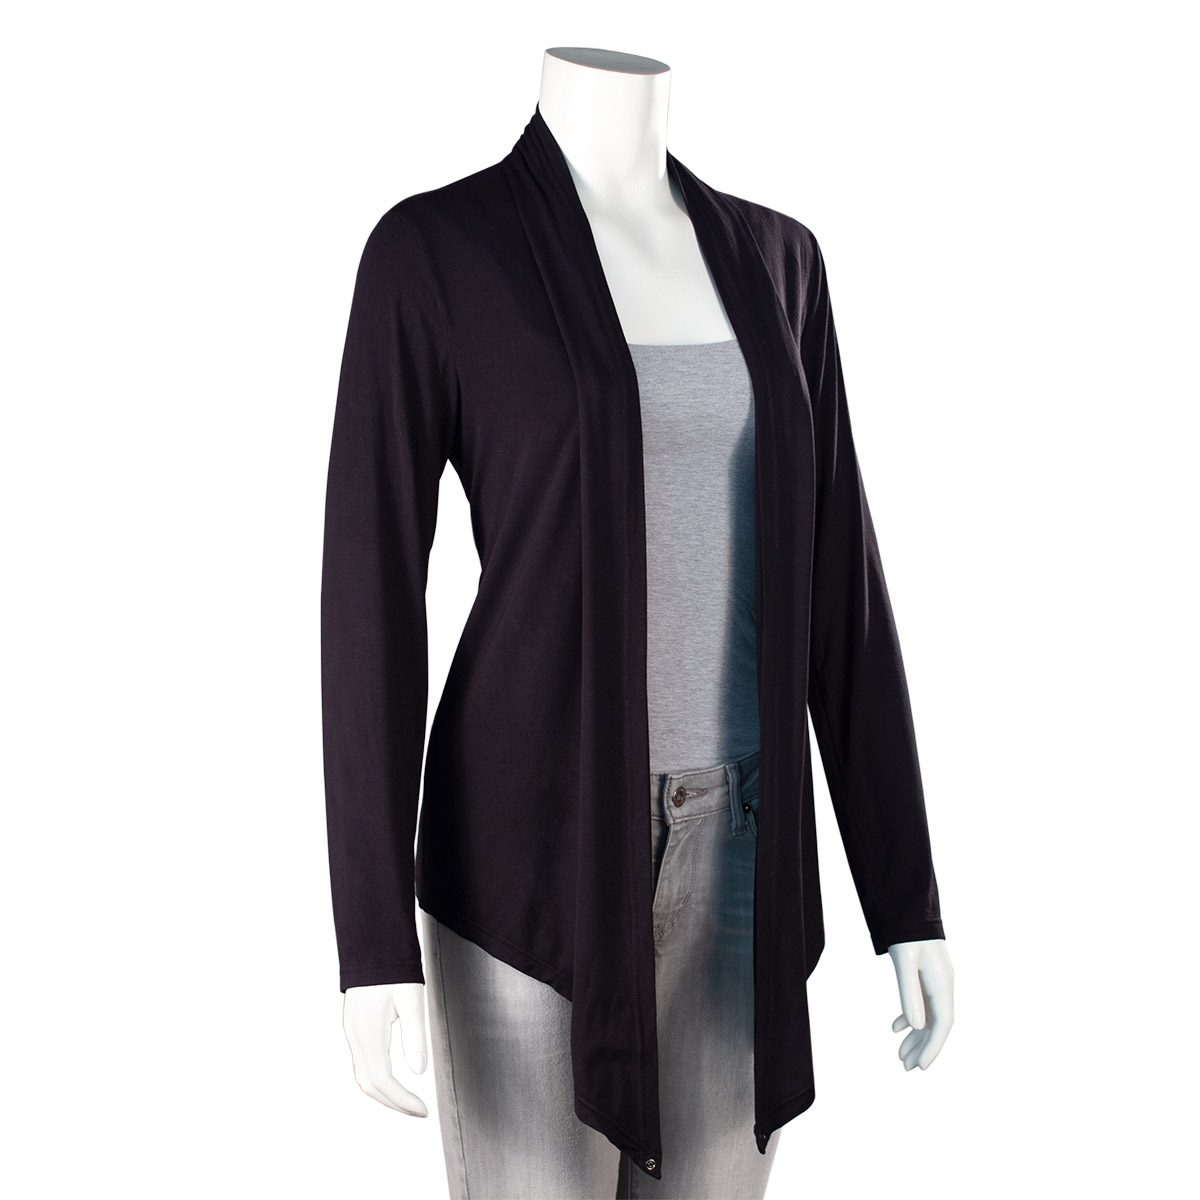 Additional View of Elesk Apparel Women's Fashion Evolution Cardigan Product Image